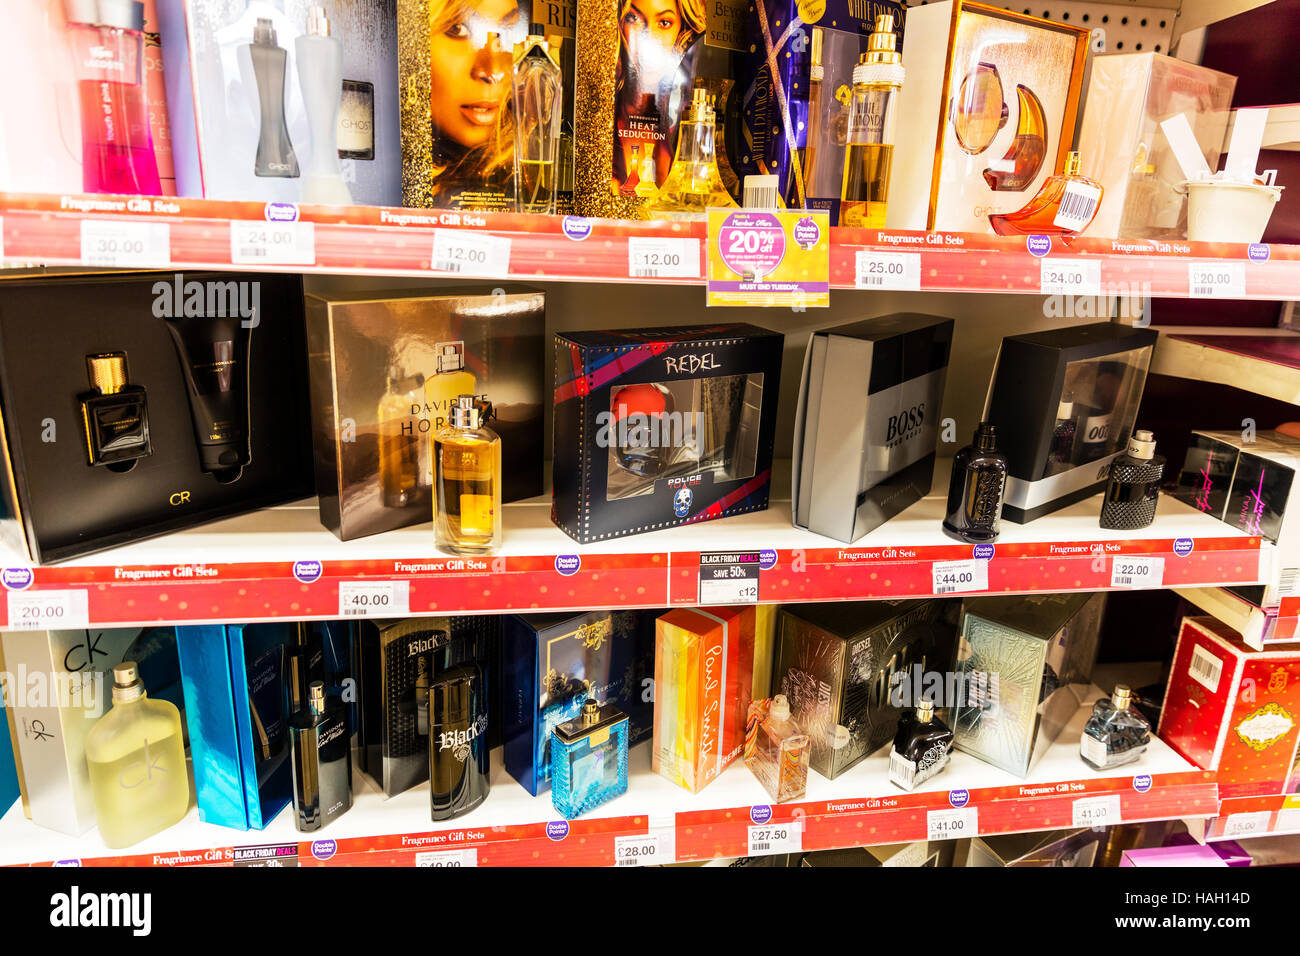 fragrances, perfume, aftershave, Product products pharmacy health shop UK England GB - Stock Image